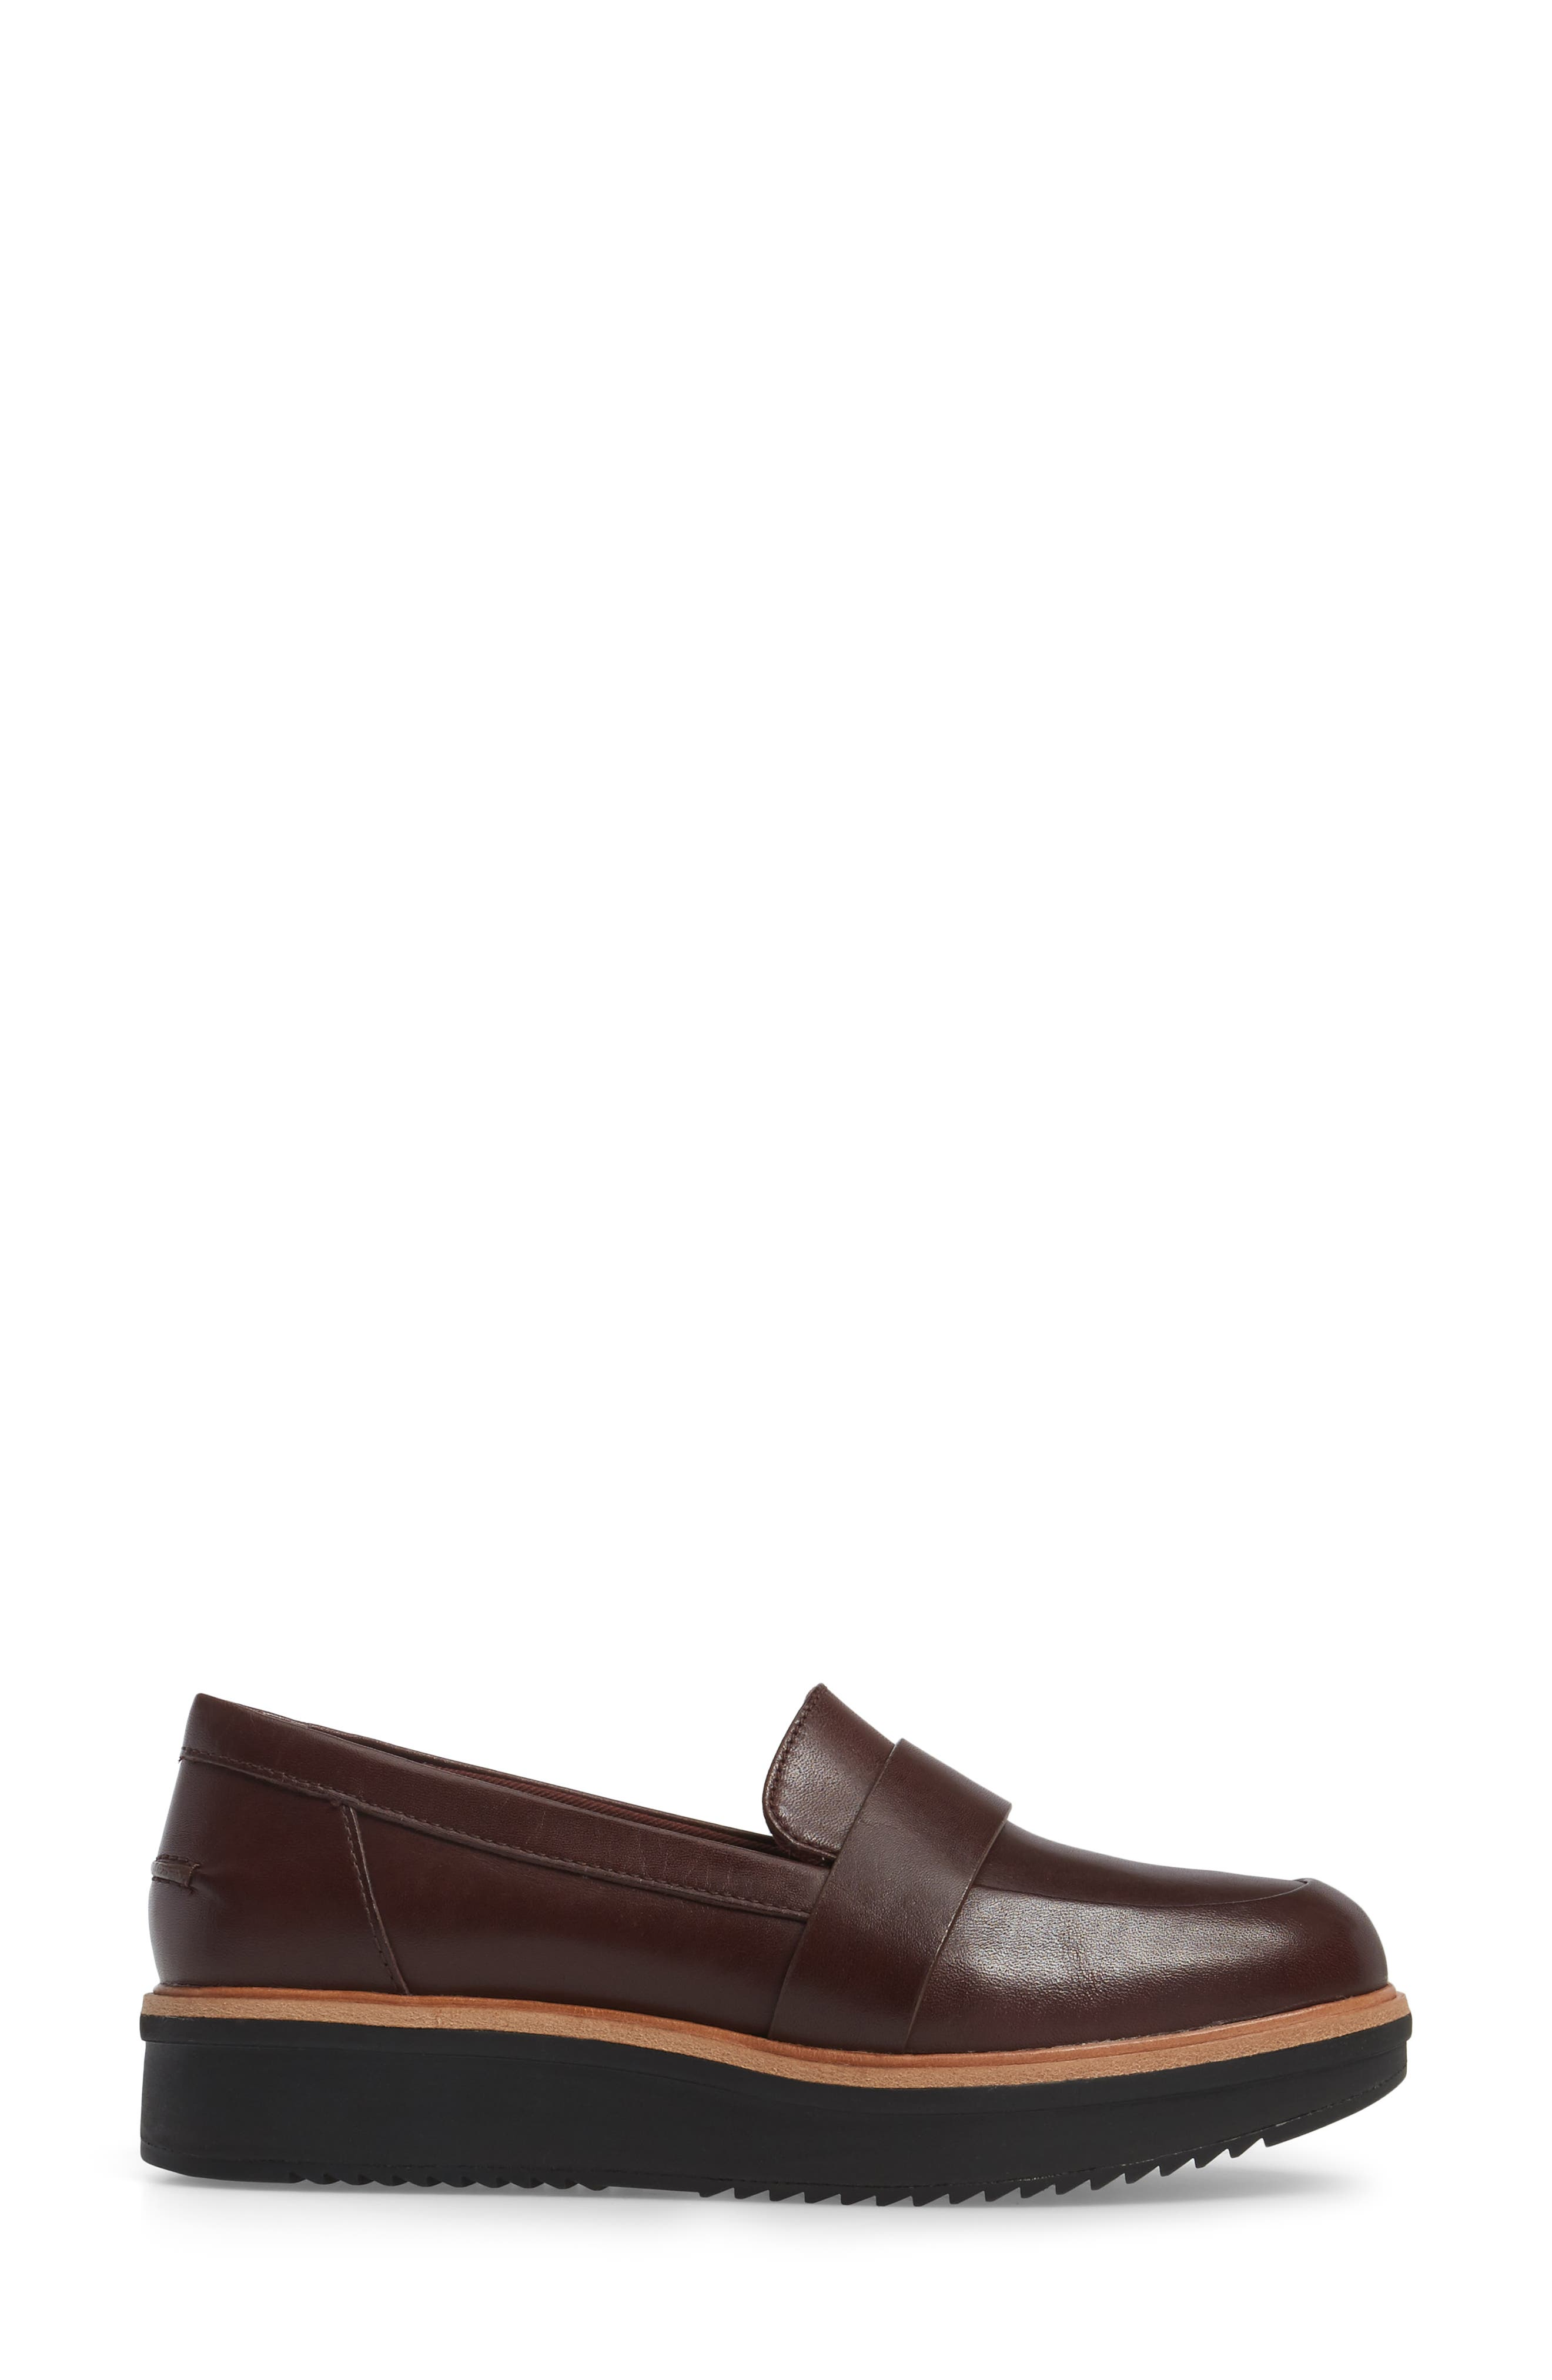 CLARKS<SUP>®</SUP>, Teadale Elsa Loafer, Alternate thumbnail 3, color, BURGUNDY LEATHER